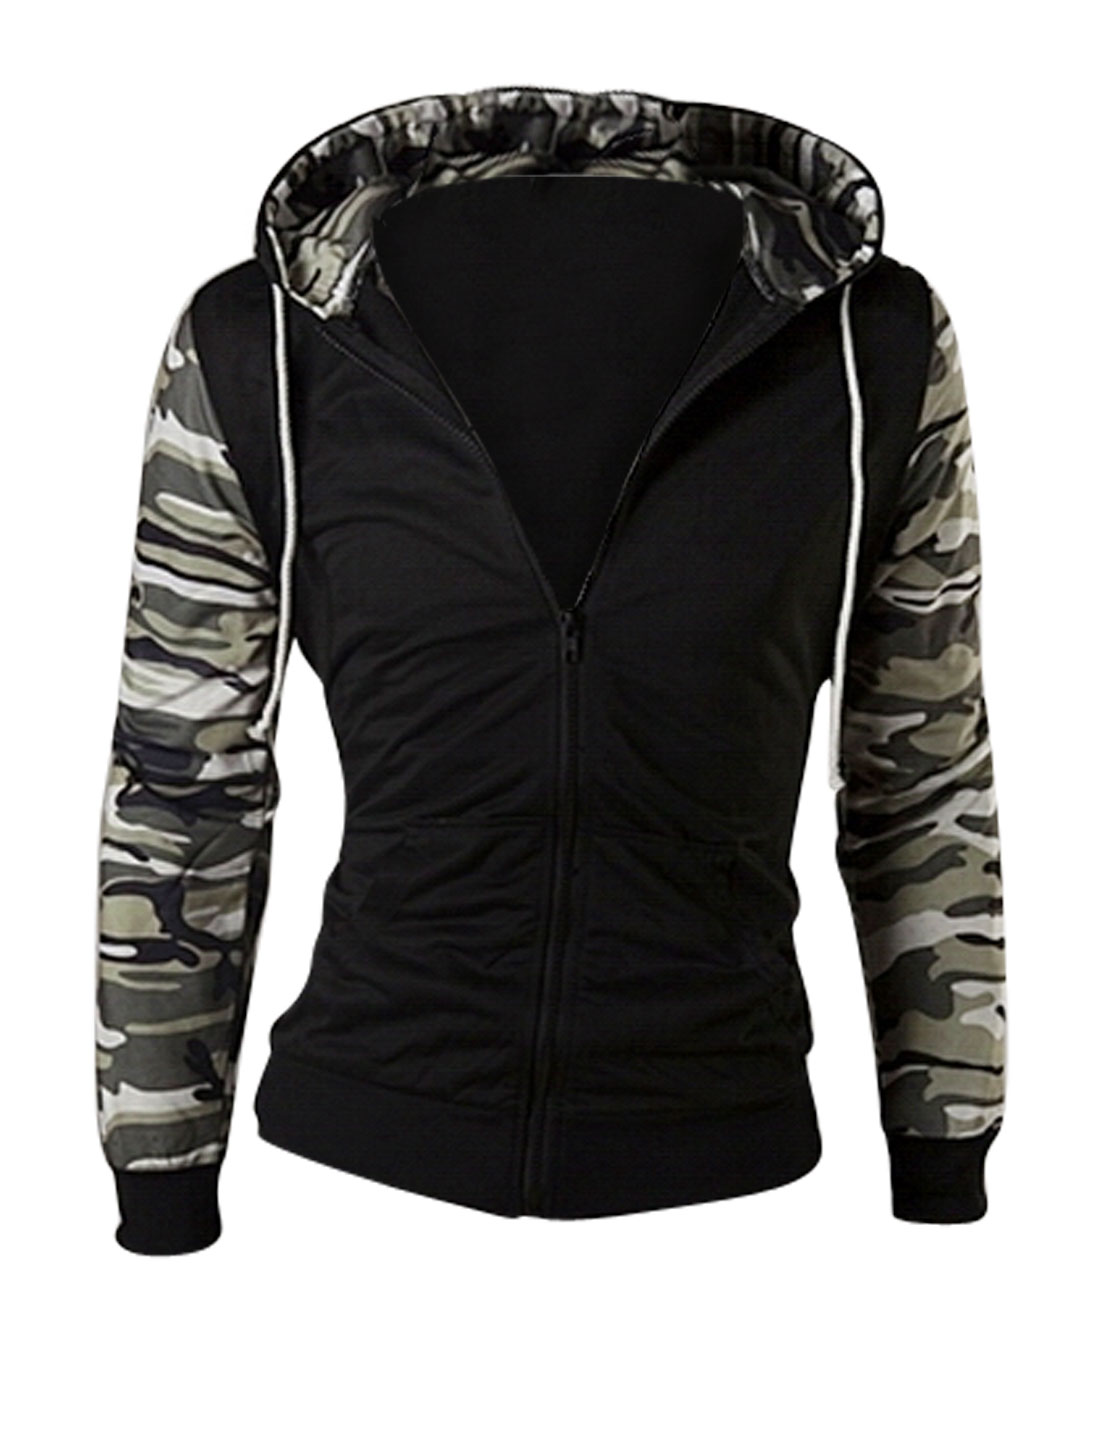 Men Camouflage Pattern Hooded Zip Up Jacket Black Beige M